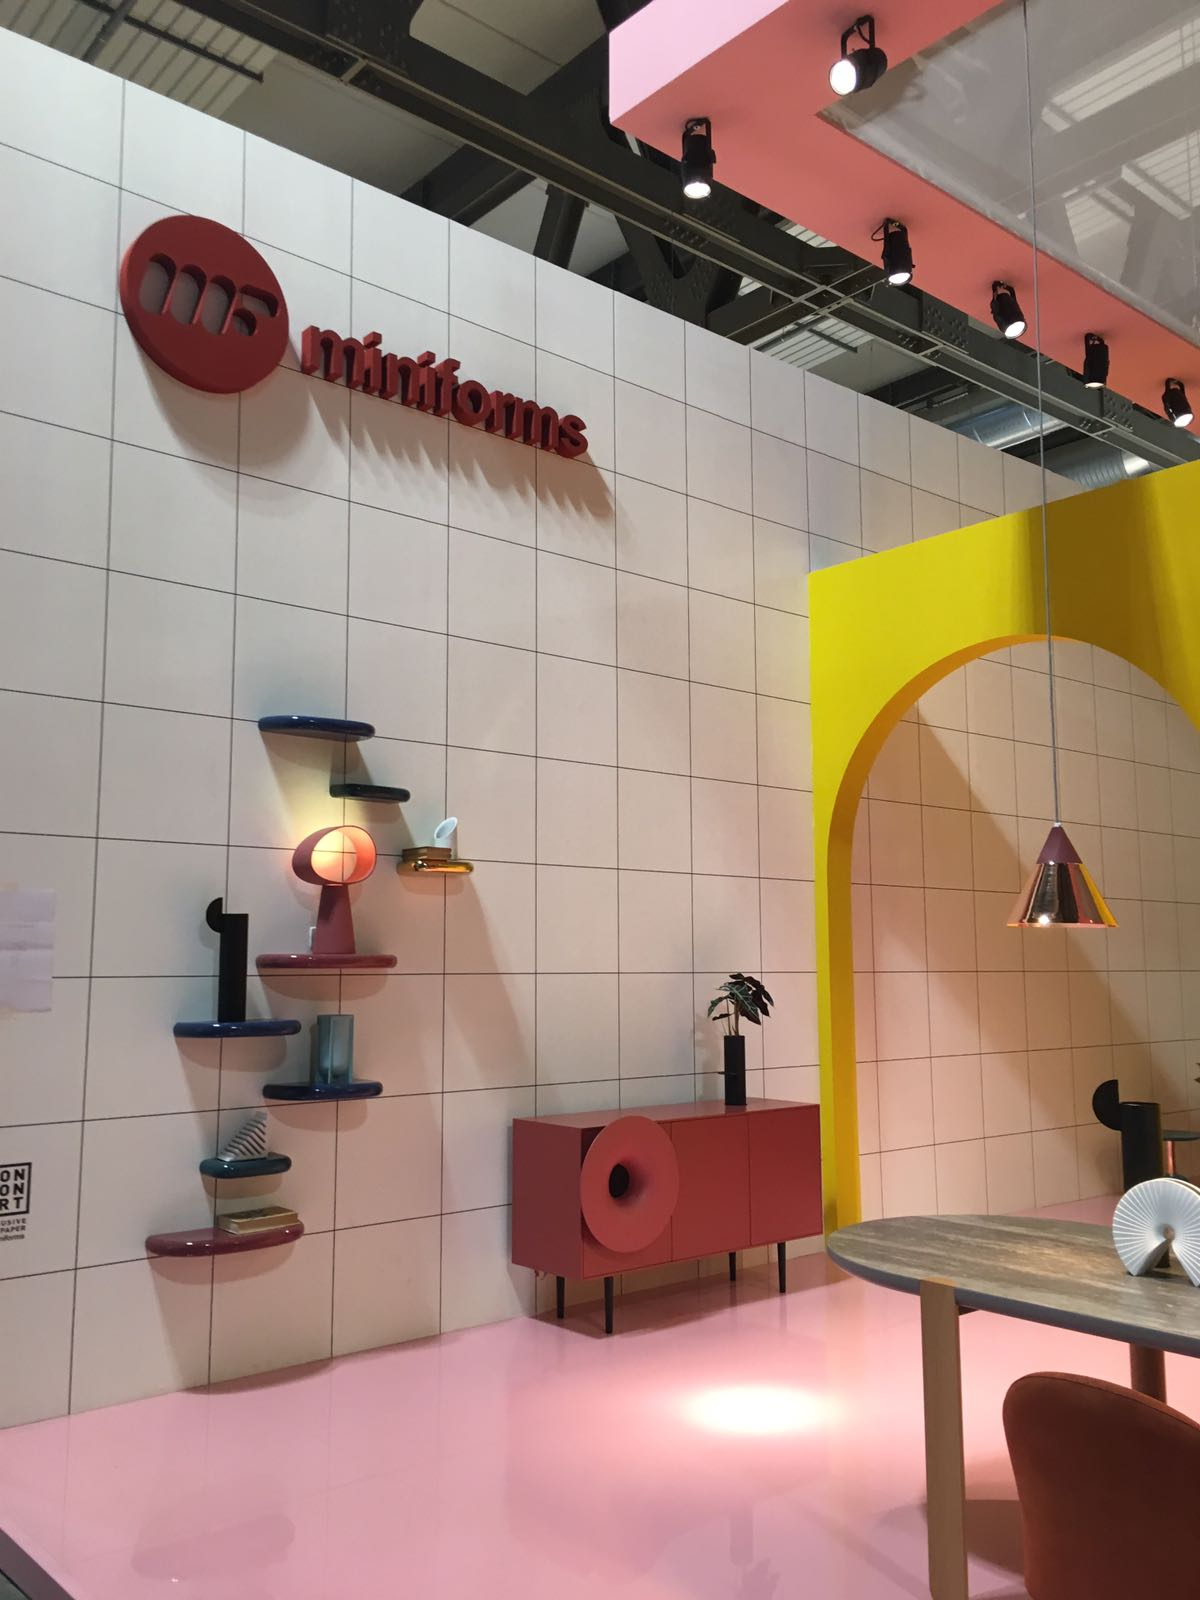 Color Trends Spotted at iSaloni 2017 | You can visit us at our website, www.essentialhome.eu and check our Pinterest @midcenturyblog to get more #MidCenturyModern inspiration. color trends Color Trends Spotted at iSaloni 2017 Color Trends Spotted at iSaloni 2017 1